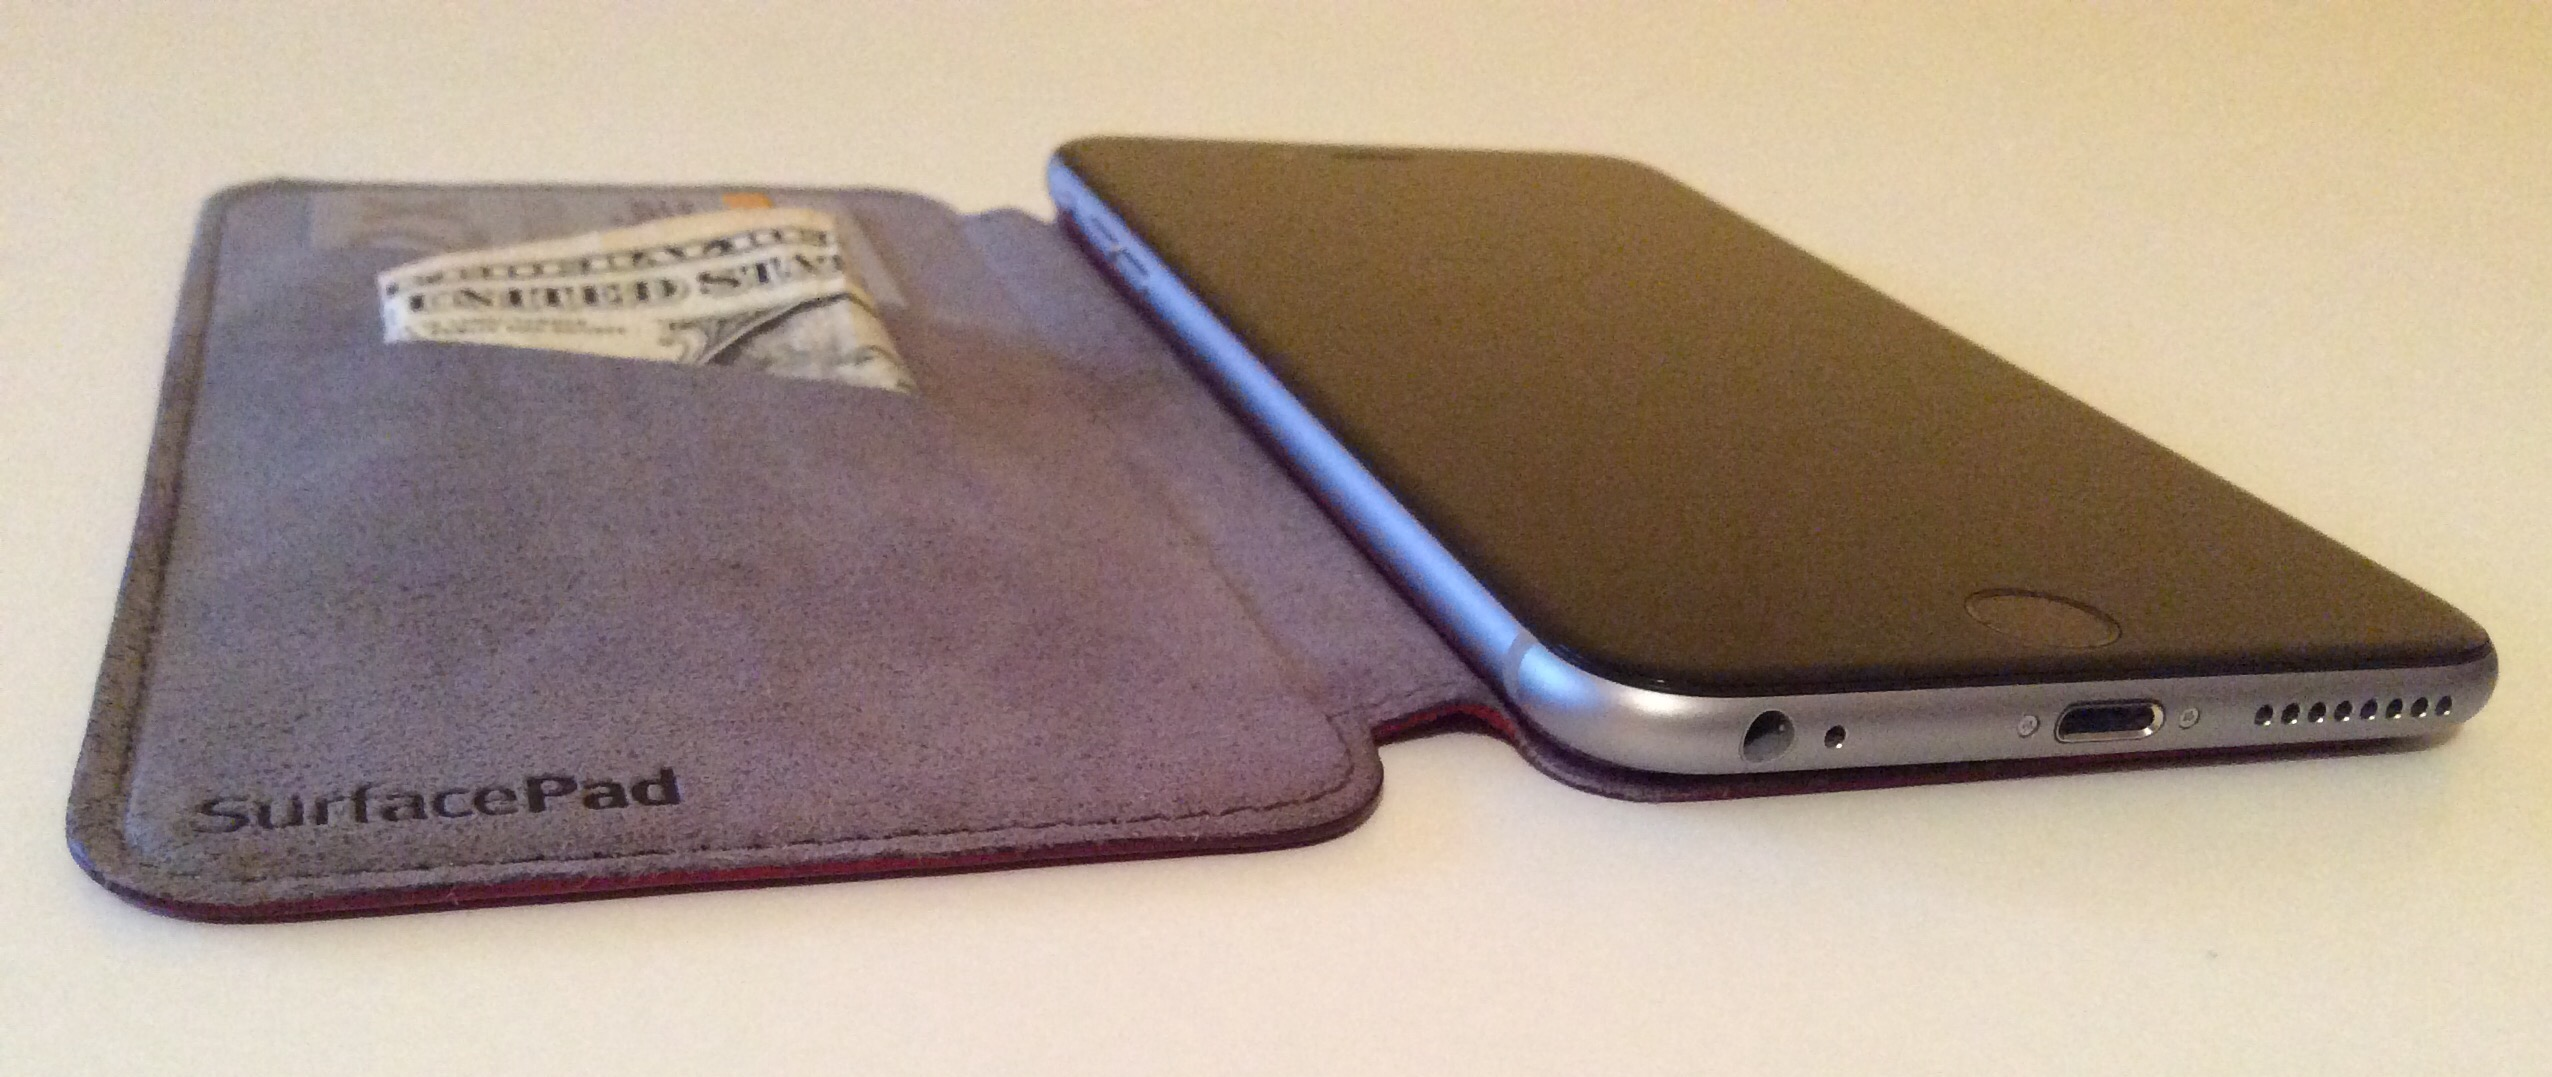 Twelve South SurfacePad for iPhone 6 Plus image 00010